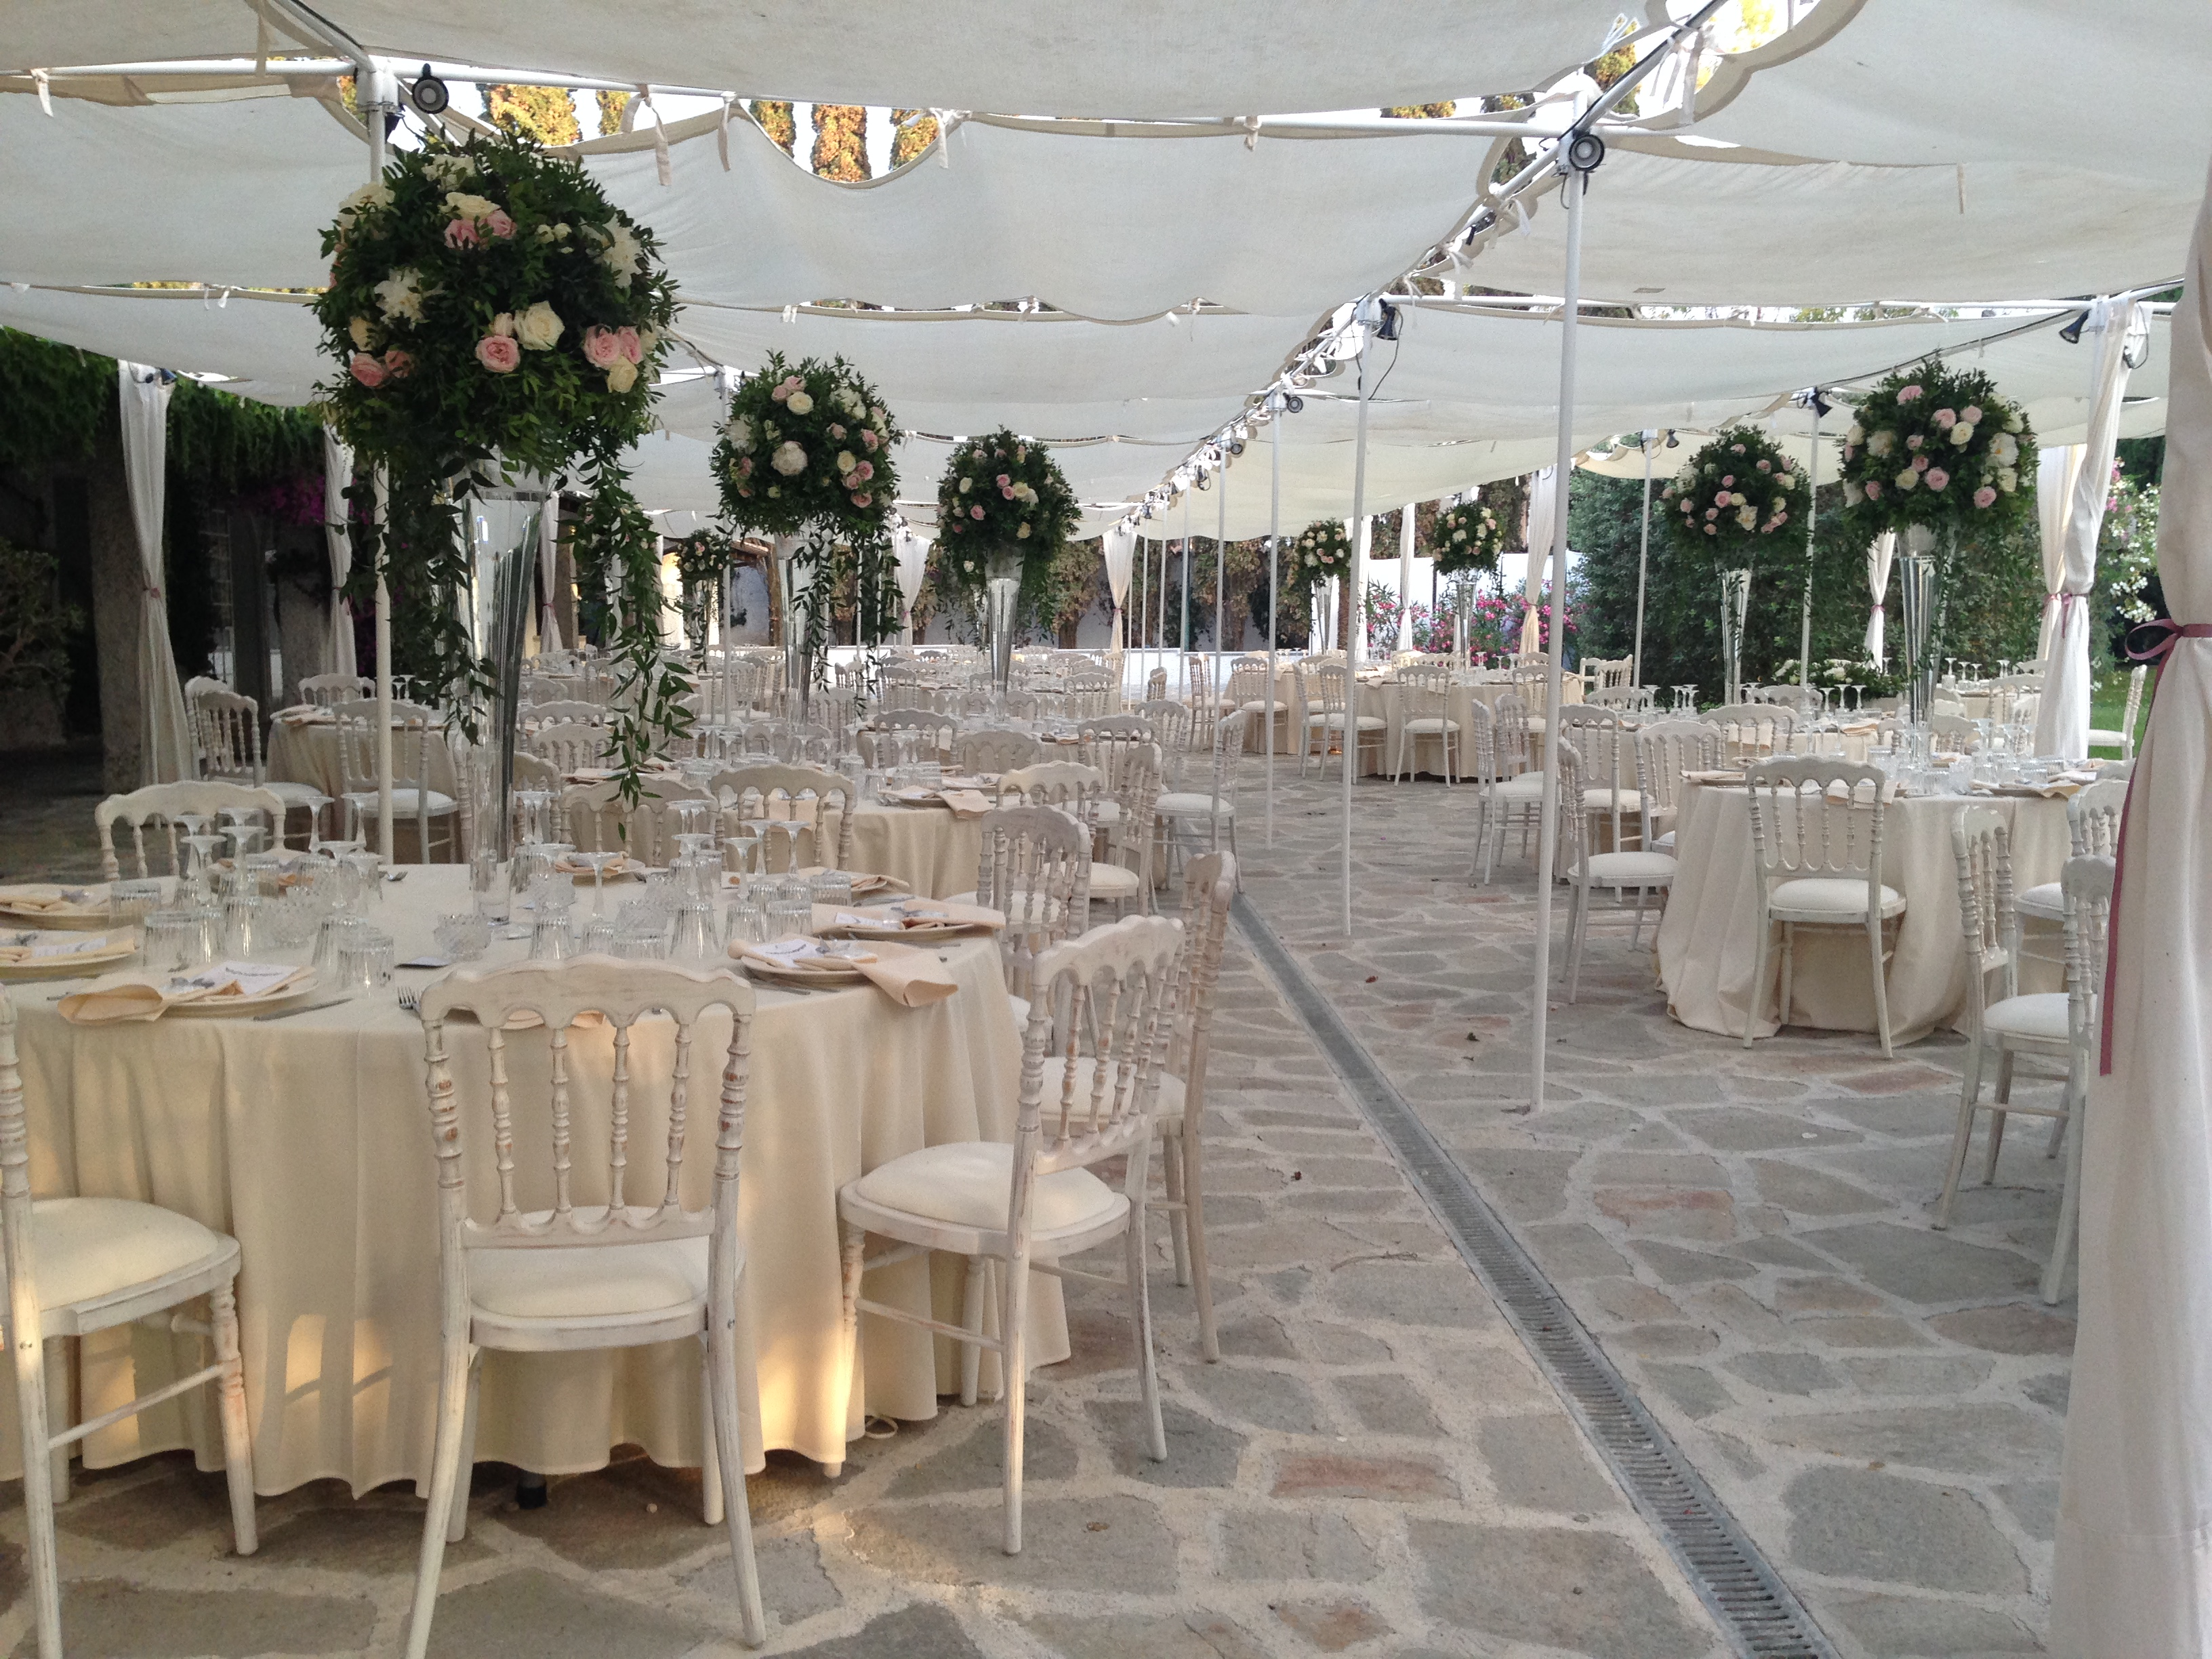 http://www.weddingamalfi.com/wp-content/uploads/Alessandro-and-Diego-wedding-tables-flowers-decoration.jpg